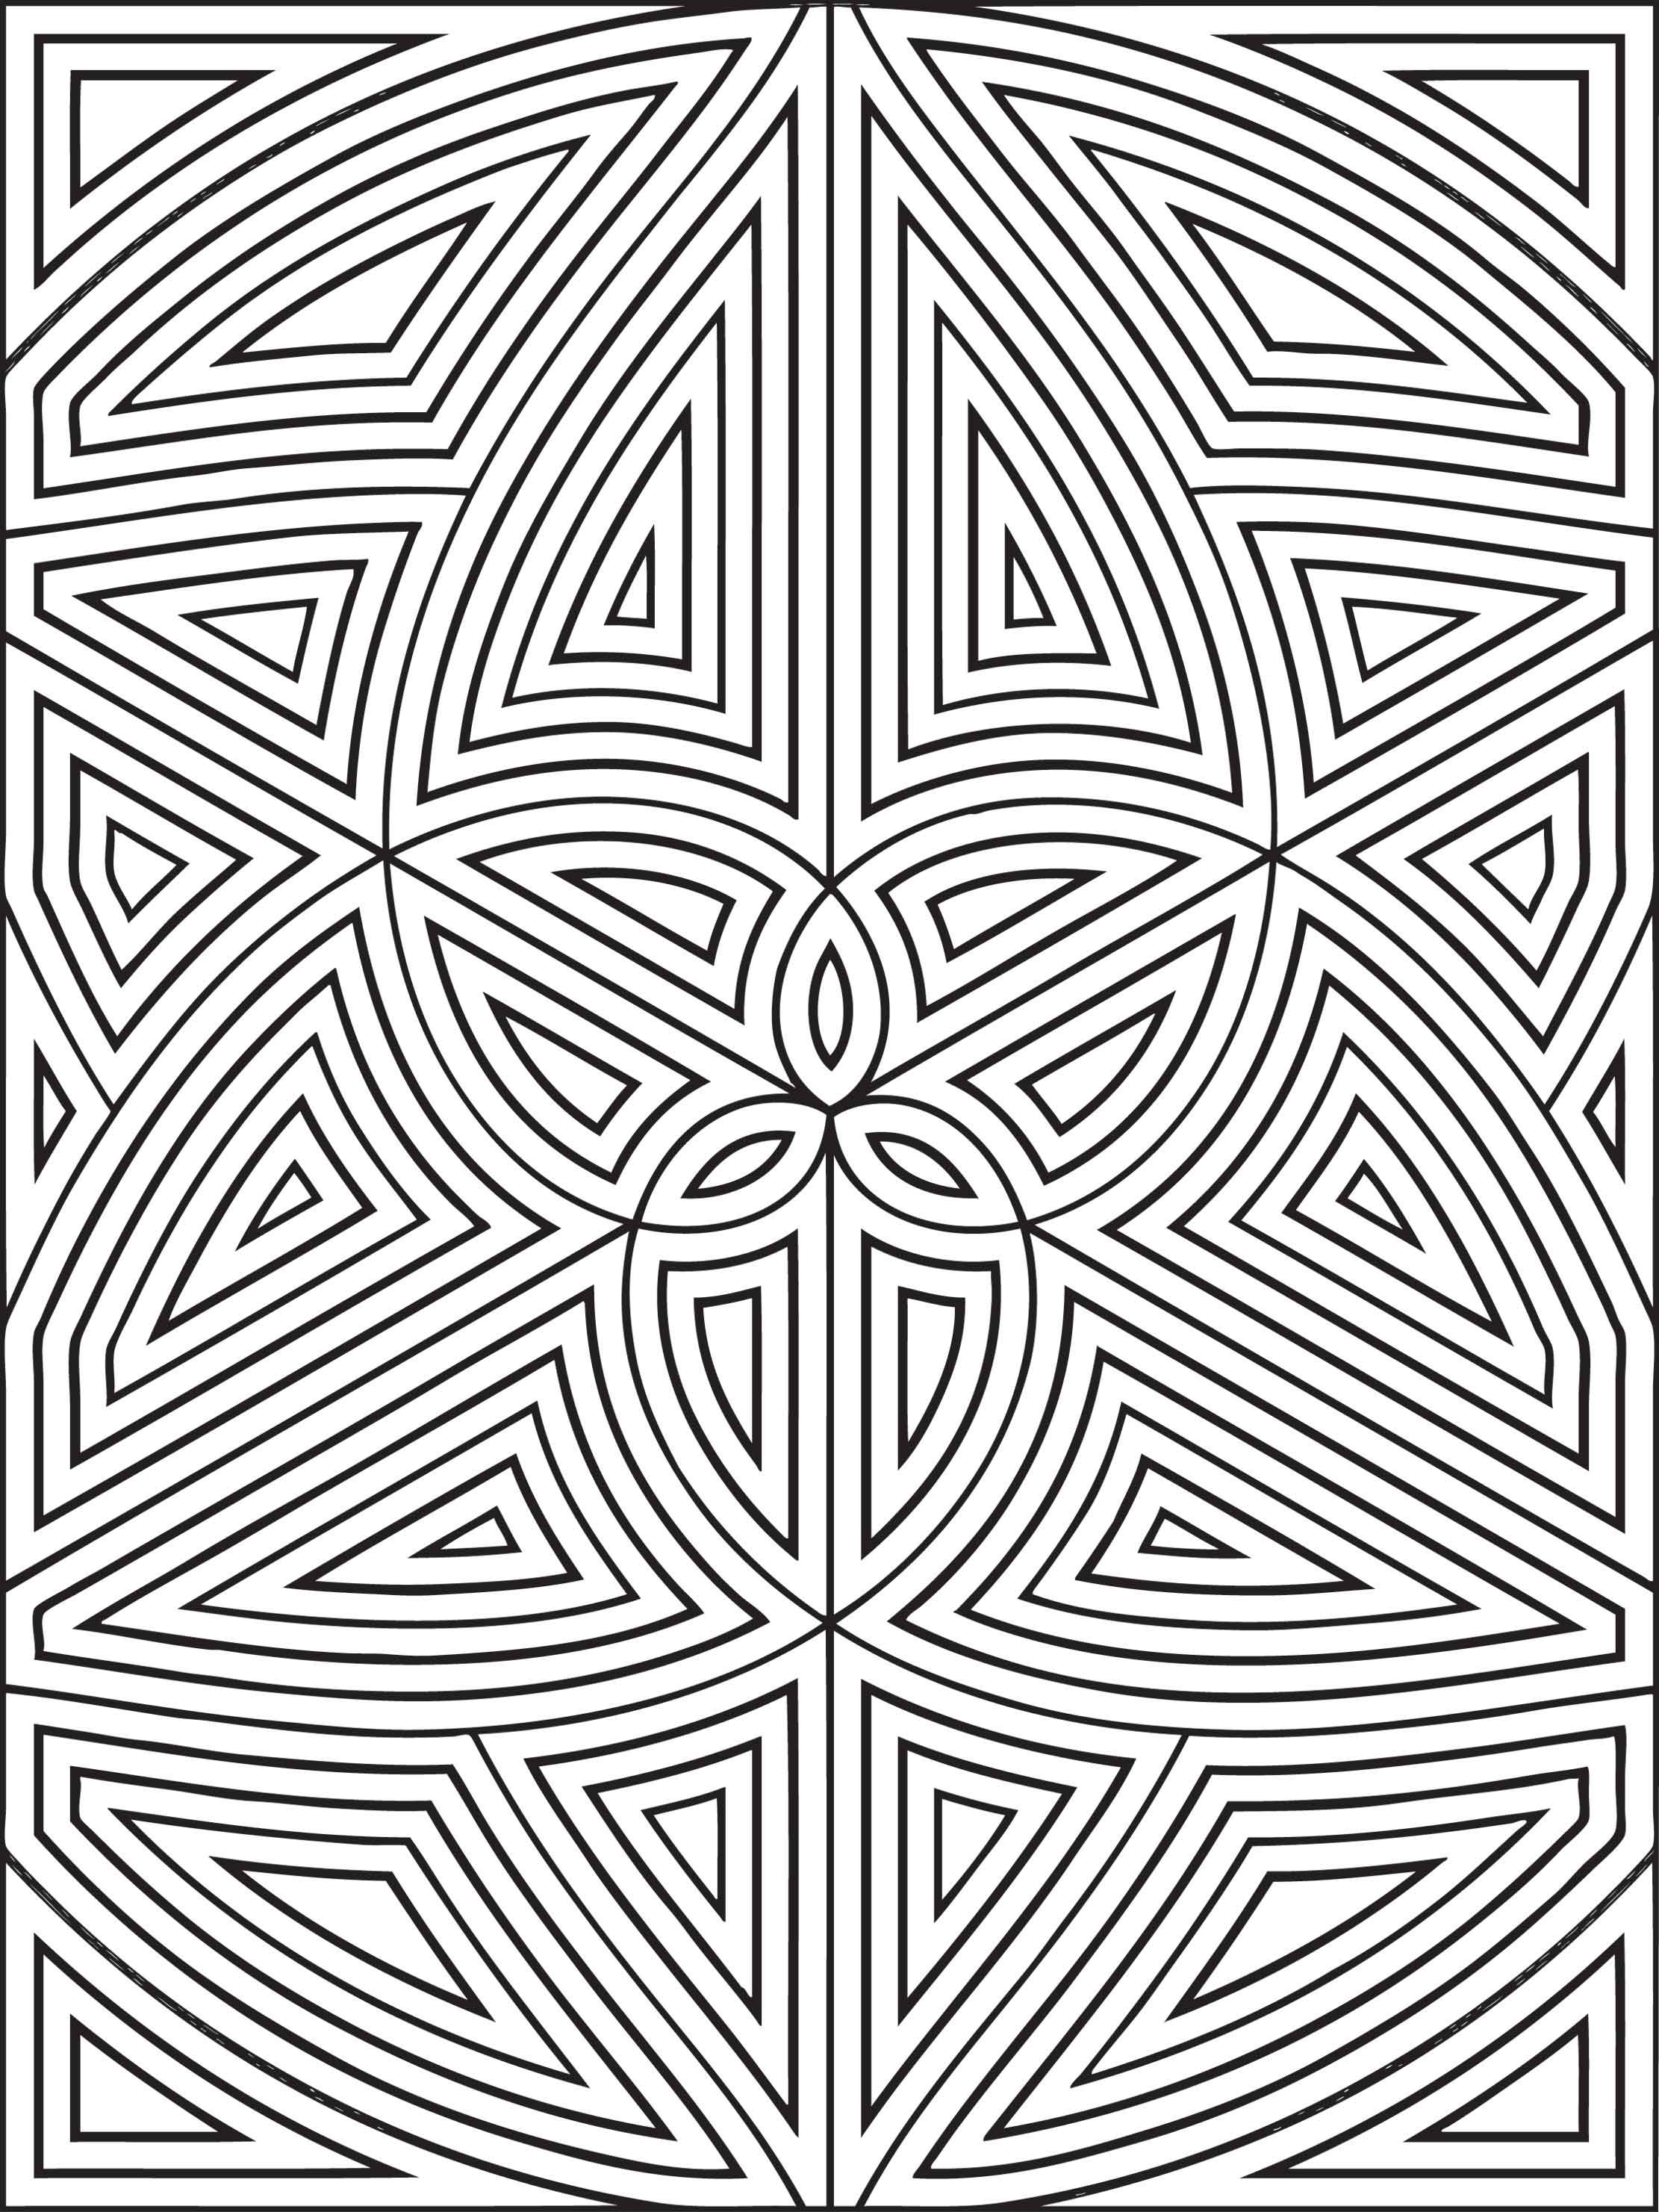 geometric shapes coloring pages Free Printable Geometric Coloring Pages For Kids geometric shapes coloring pages